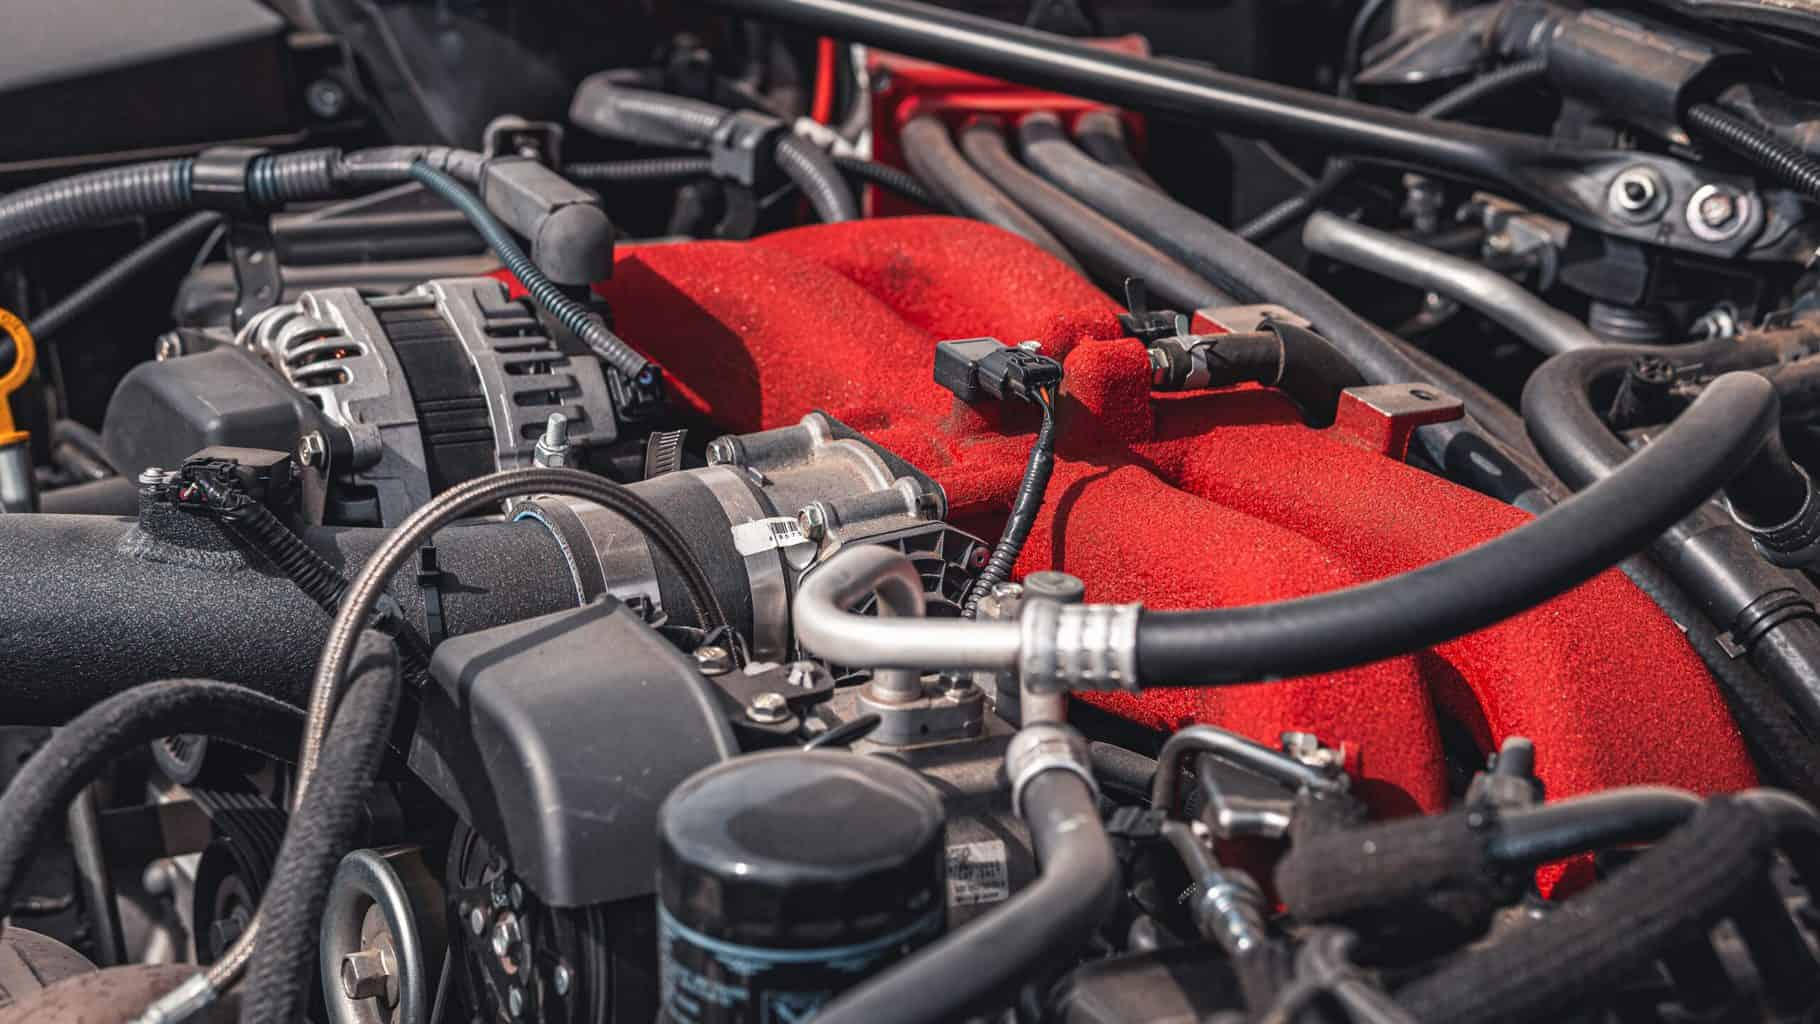 A car engine with a red block heater